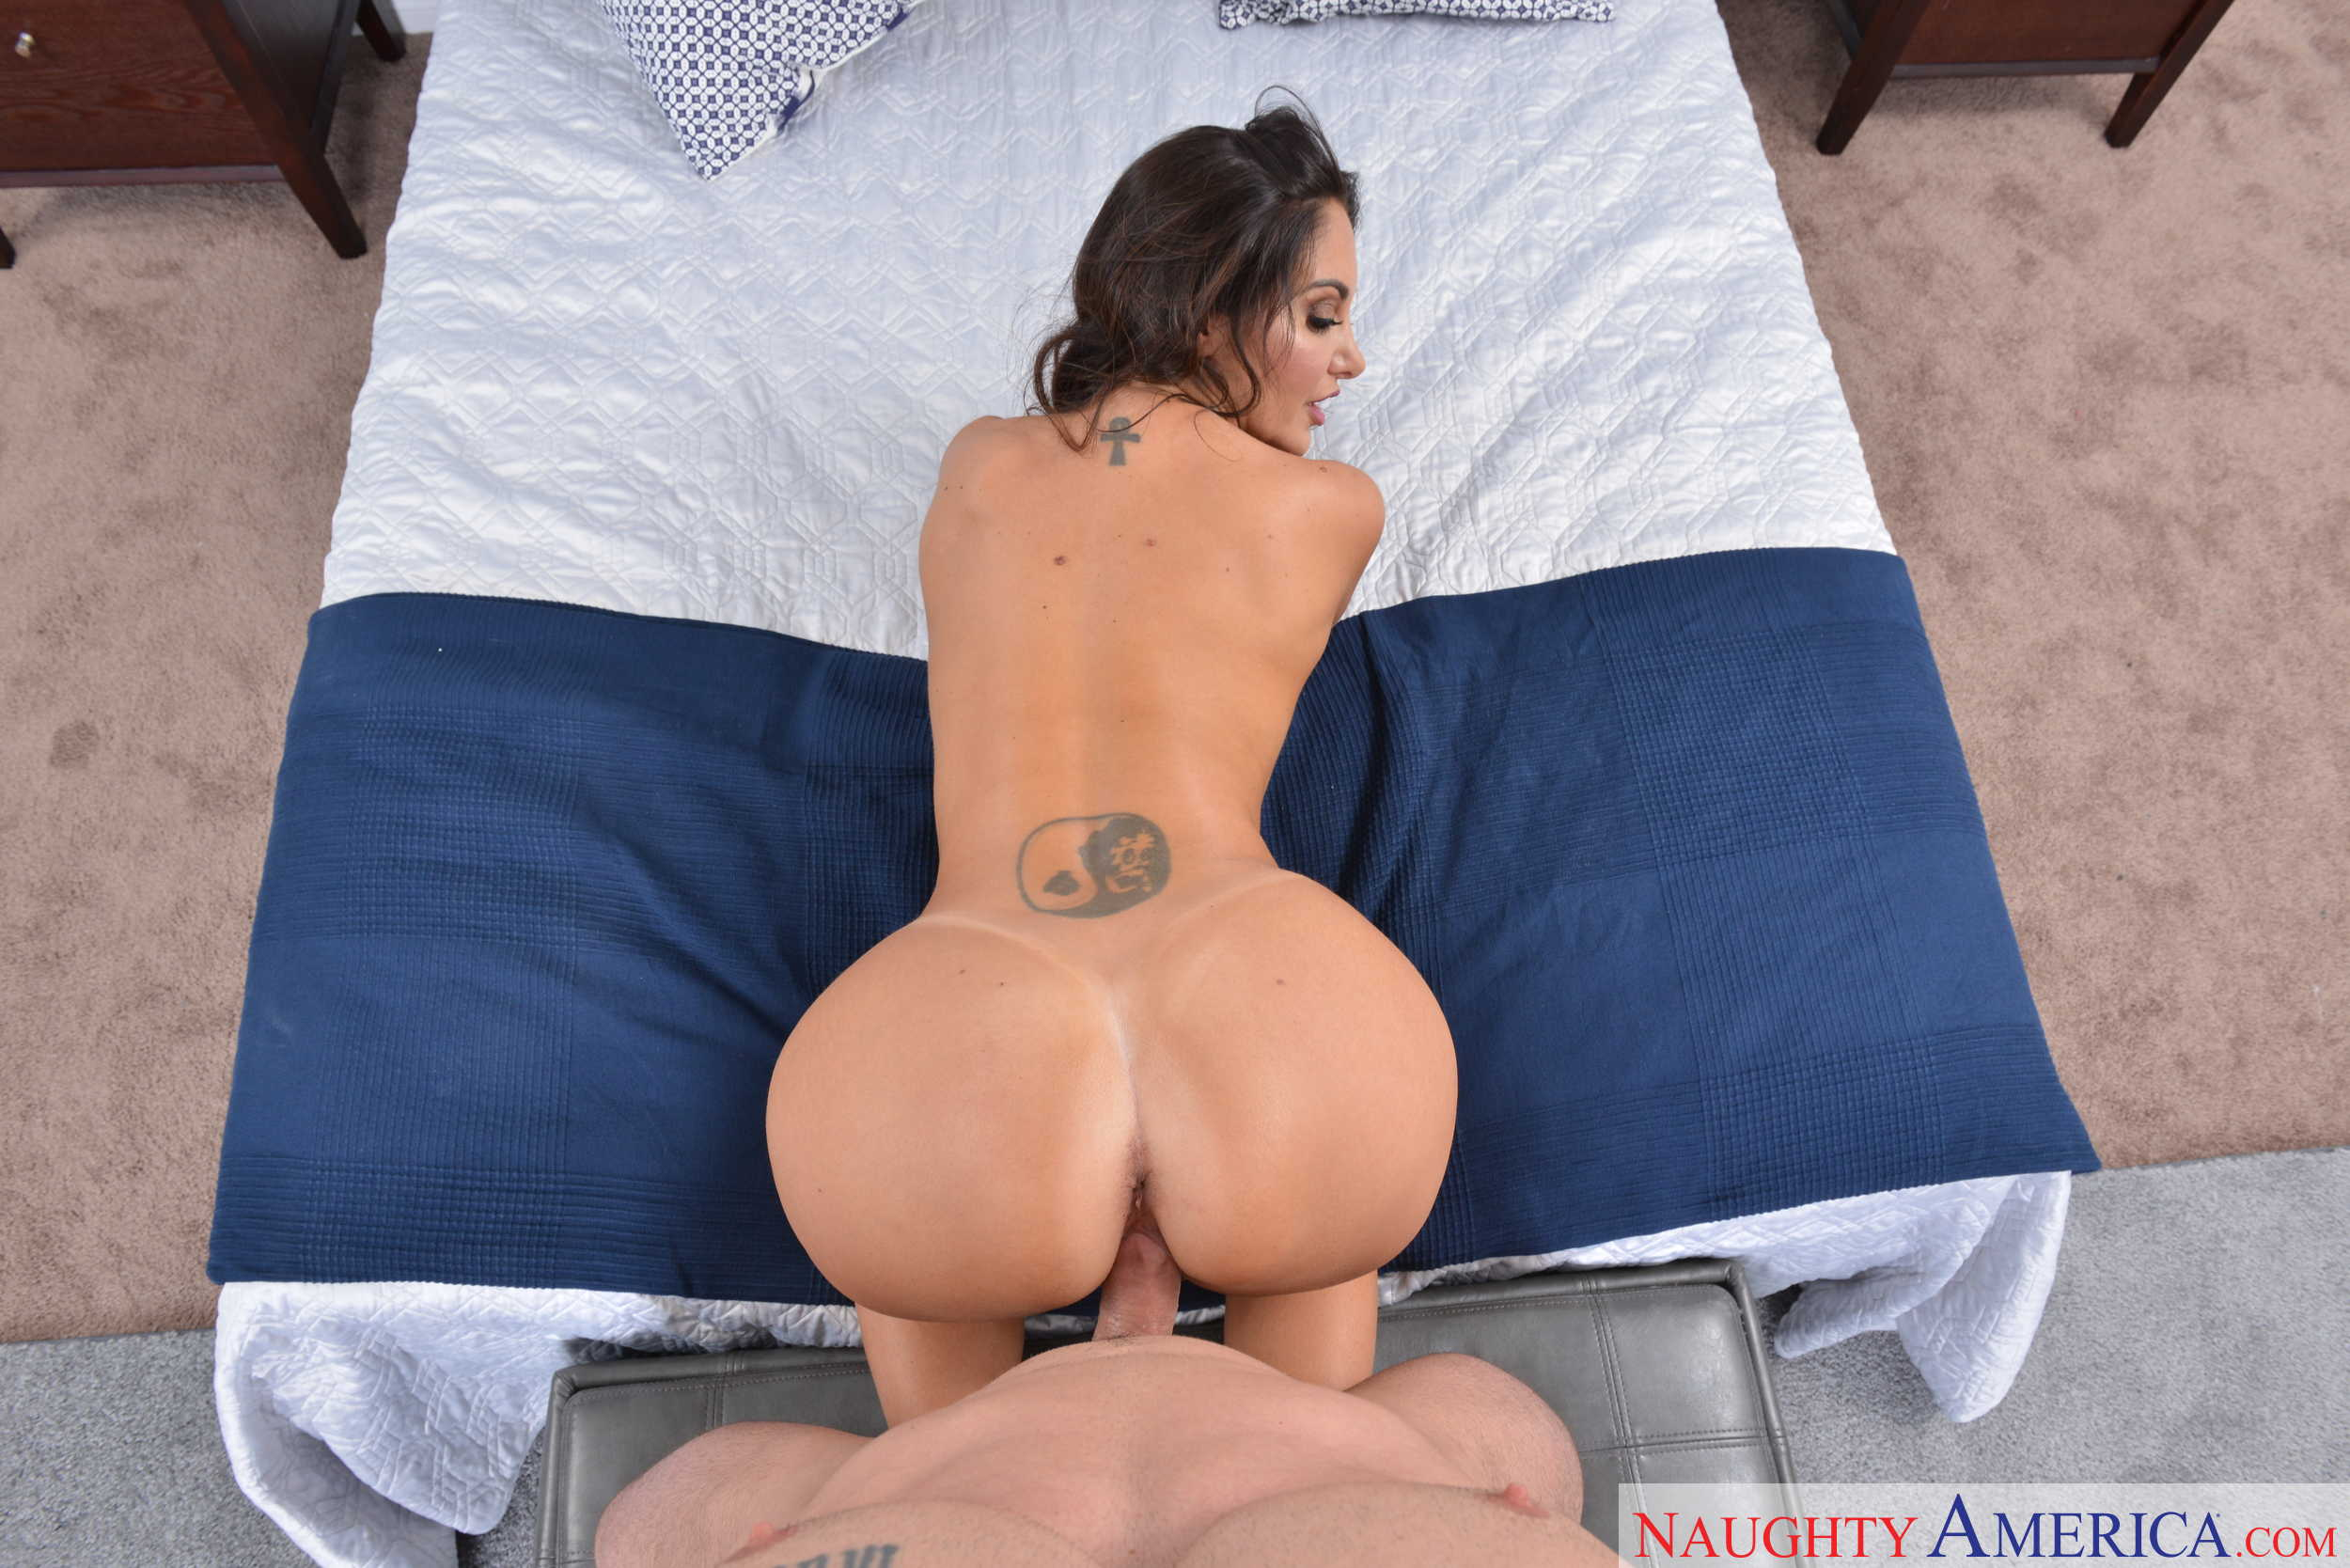 Adriana chechik in katy perry et remix - 3 part 1